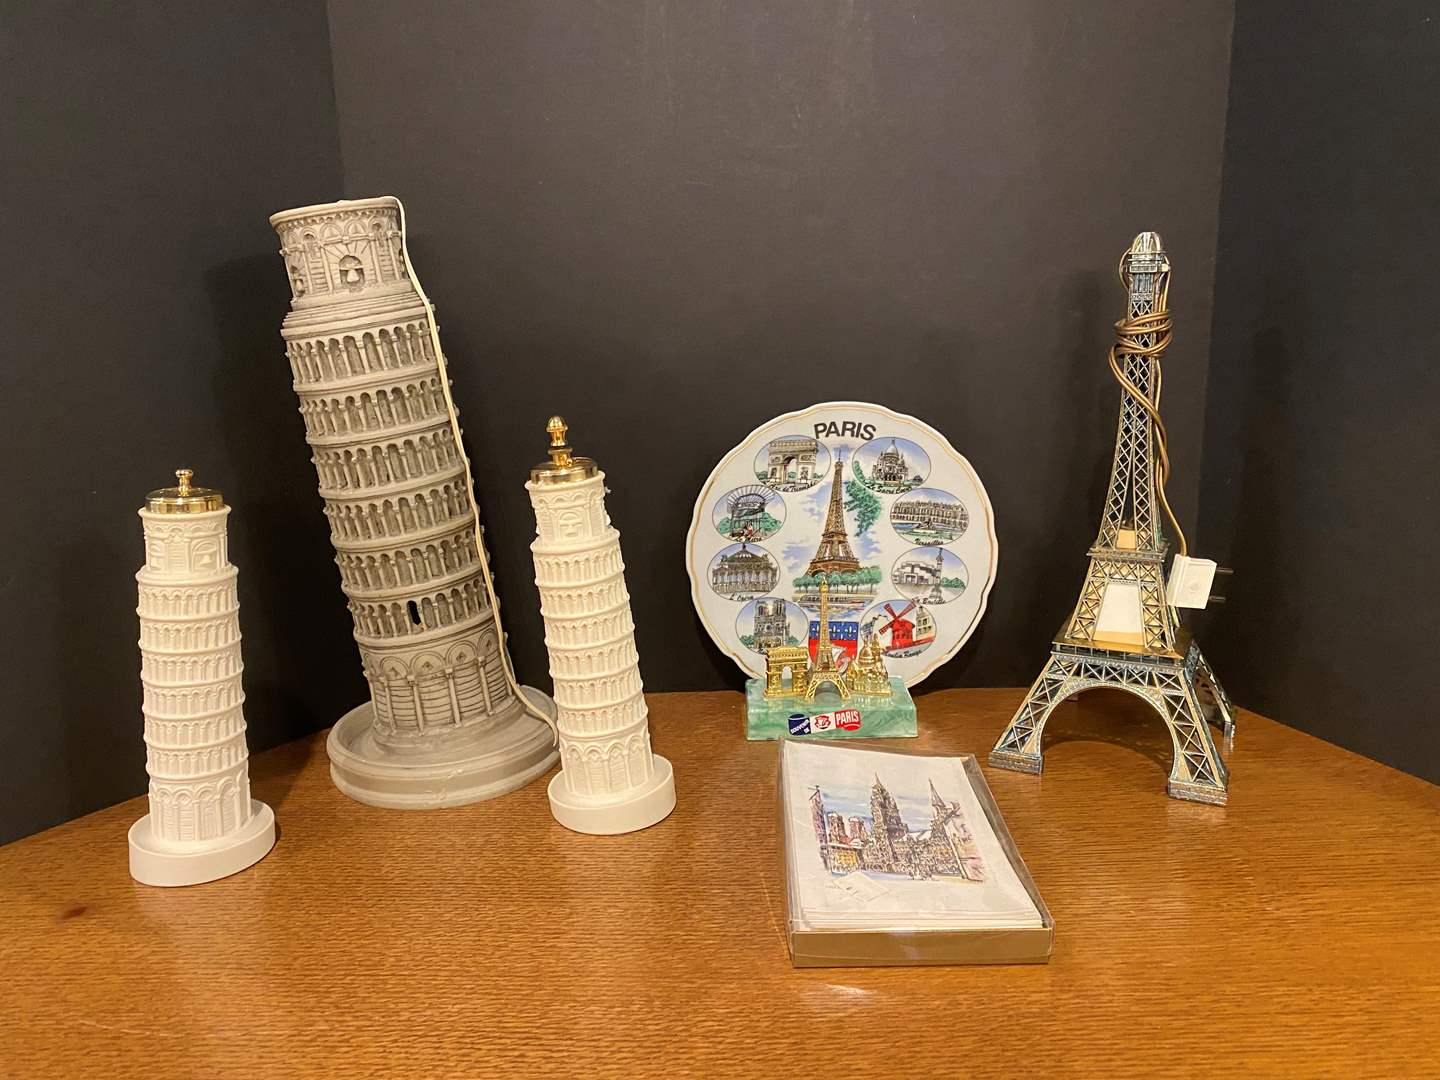 Lot # 166 - Leaning Tower of Pisa Lamp w/Salt & Pepper Shakers, Eiffel Tower Lamp, Paris Plate & More.. (main image)